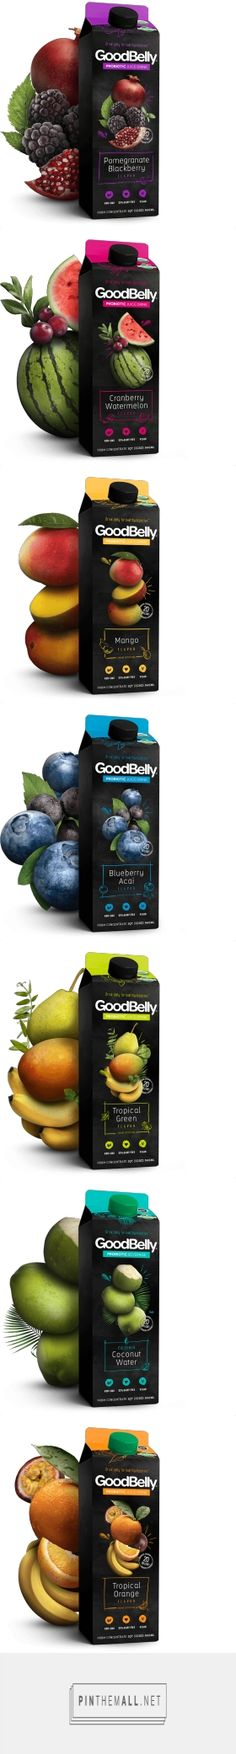 GoodBelly probiotic juices by LRXD. Pin curated by SFields99. #packaging